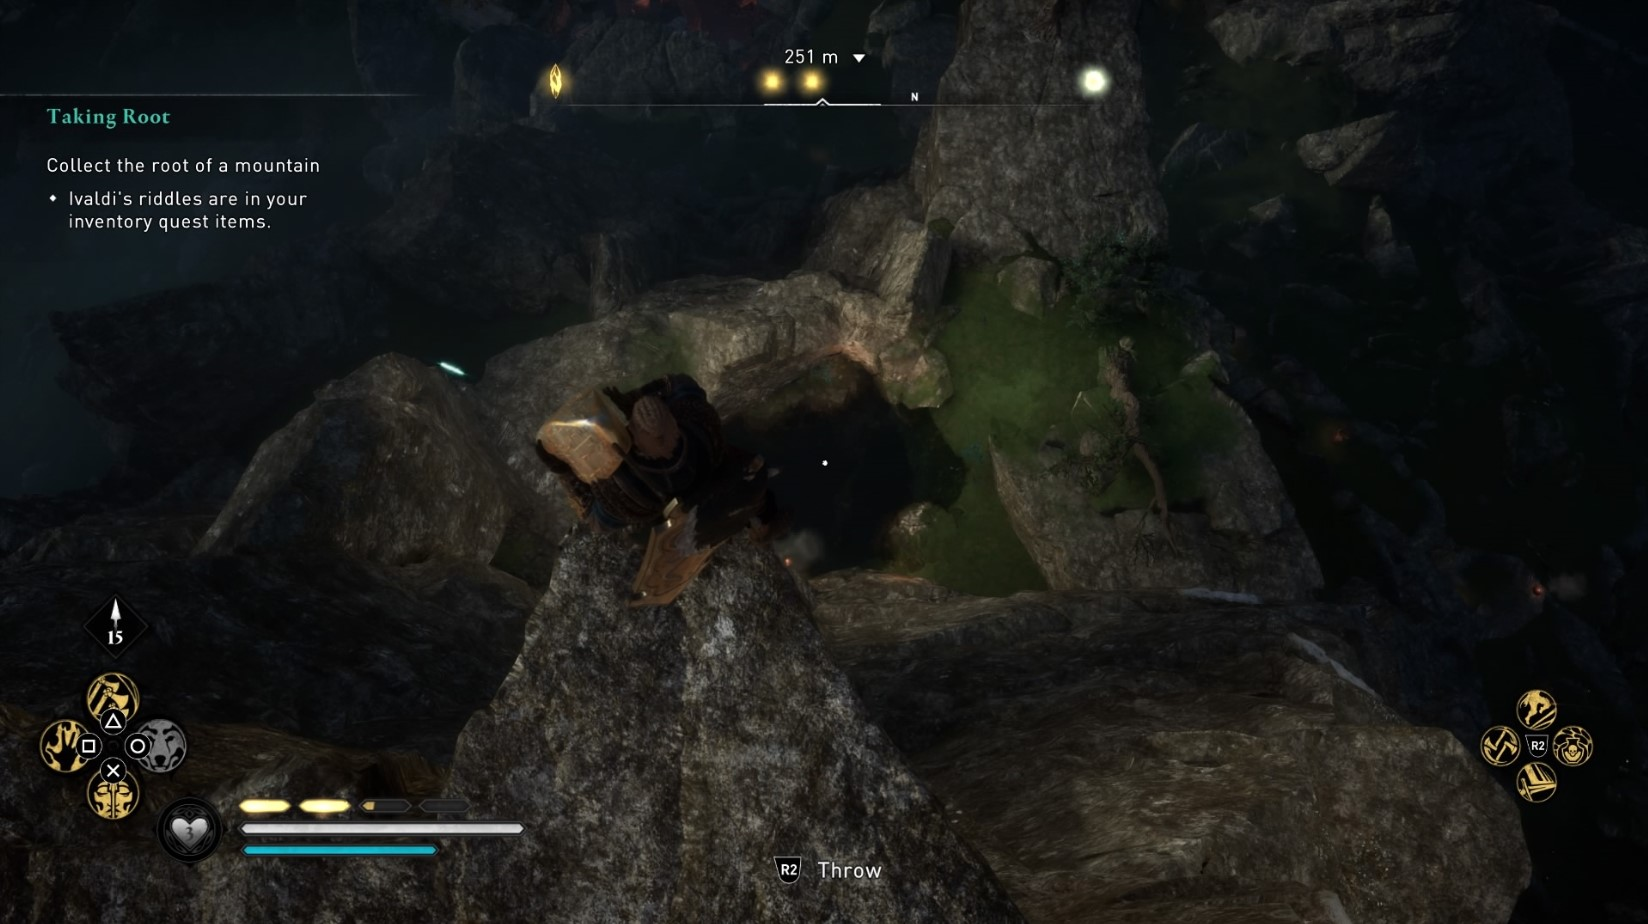 Assassin S Creed Valhalla Riddles How To Collect A Cat S Footfall And Root Of A Mountain Gamez